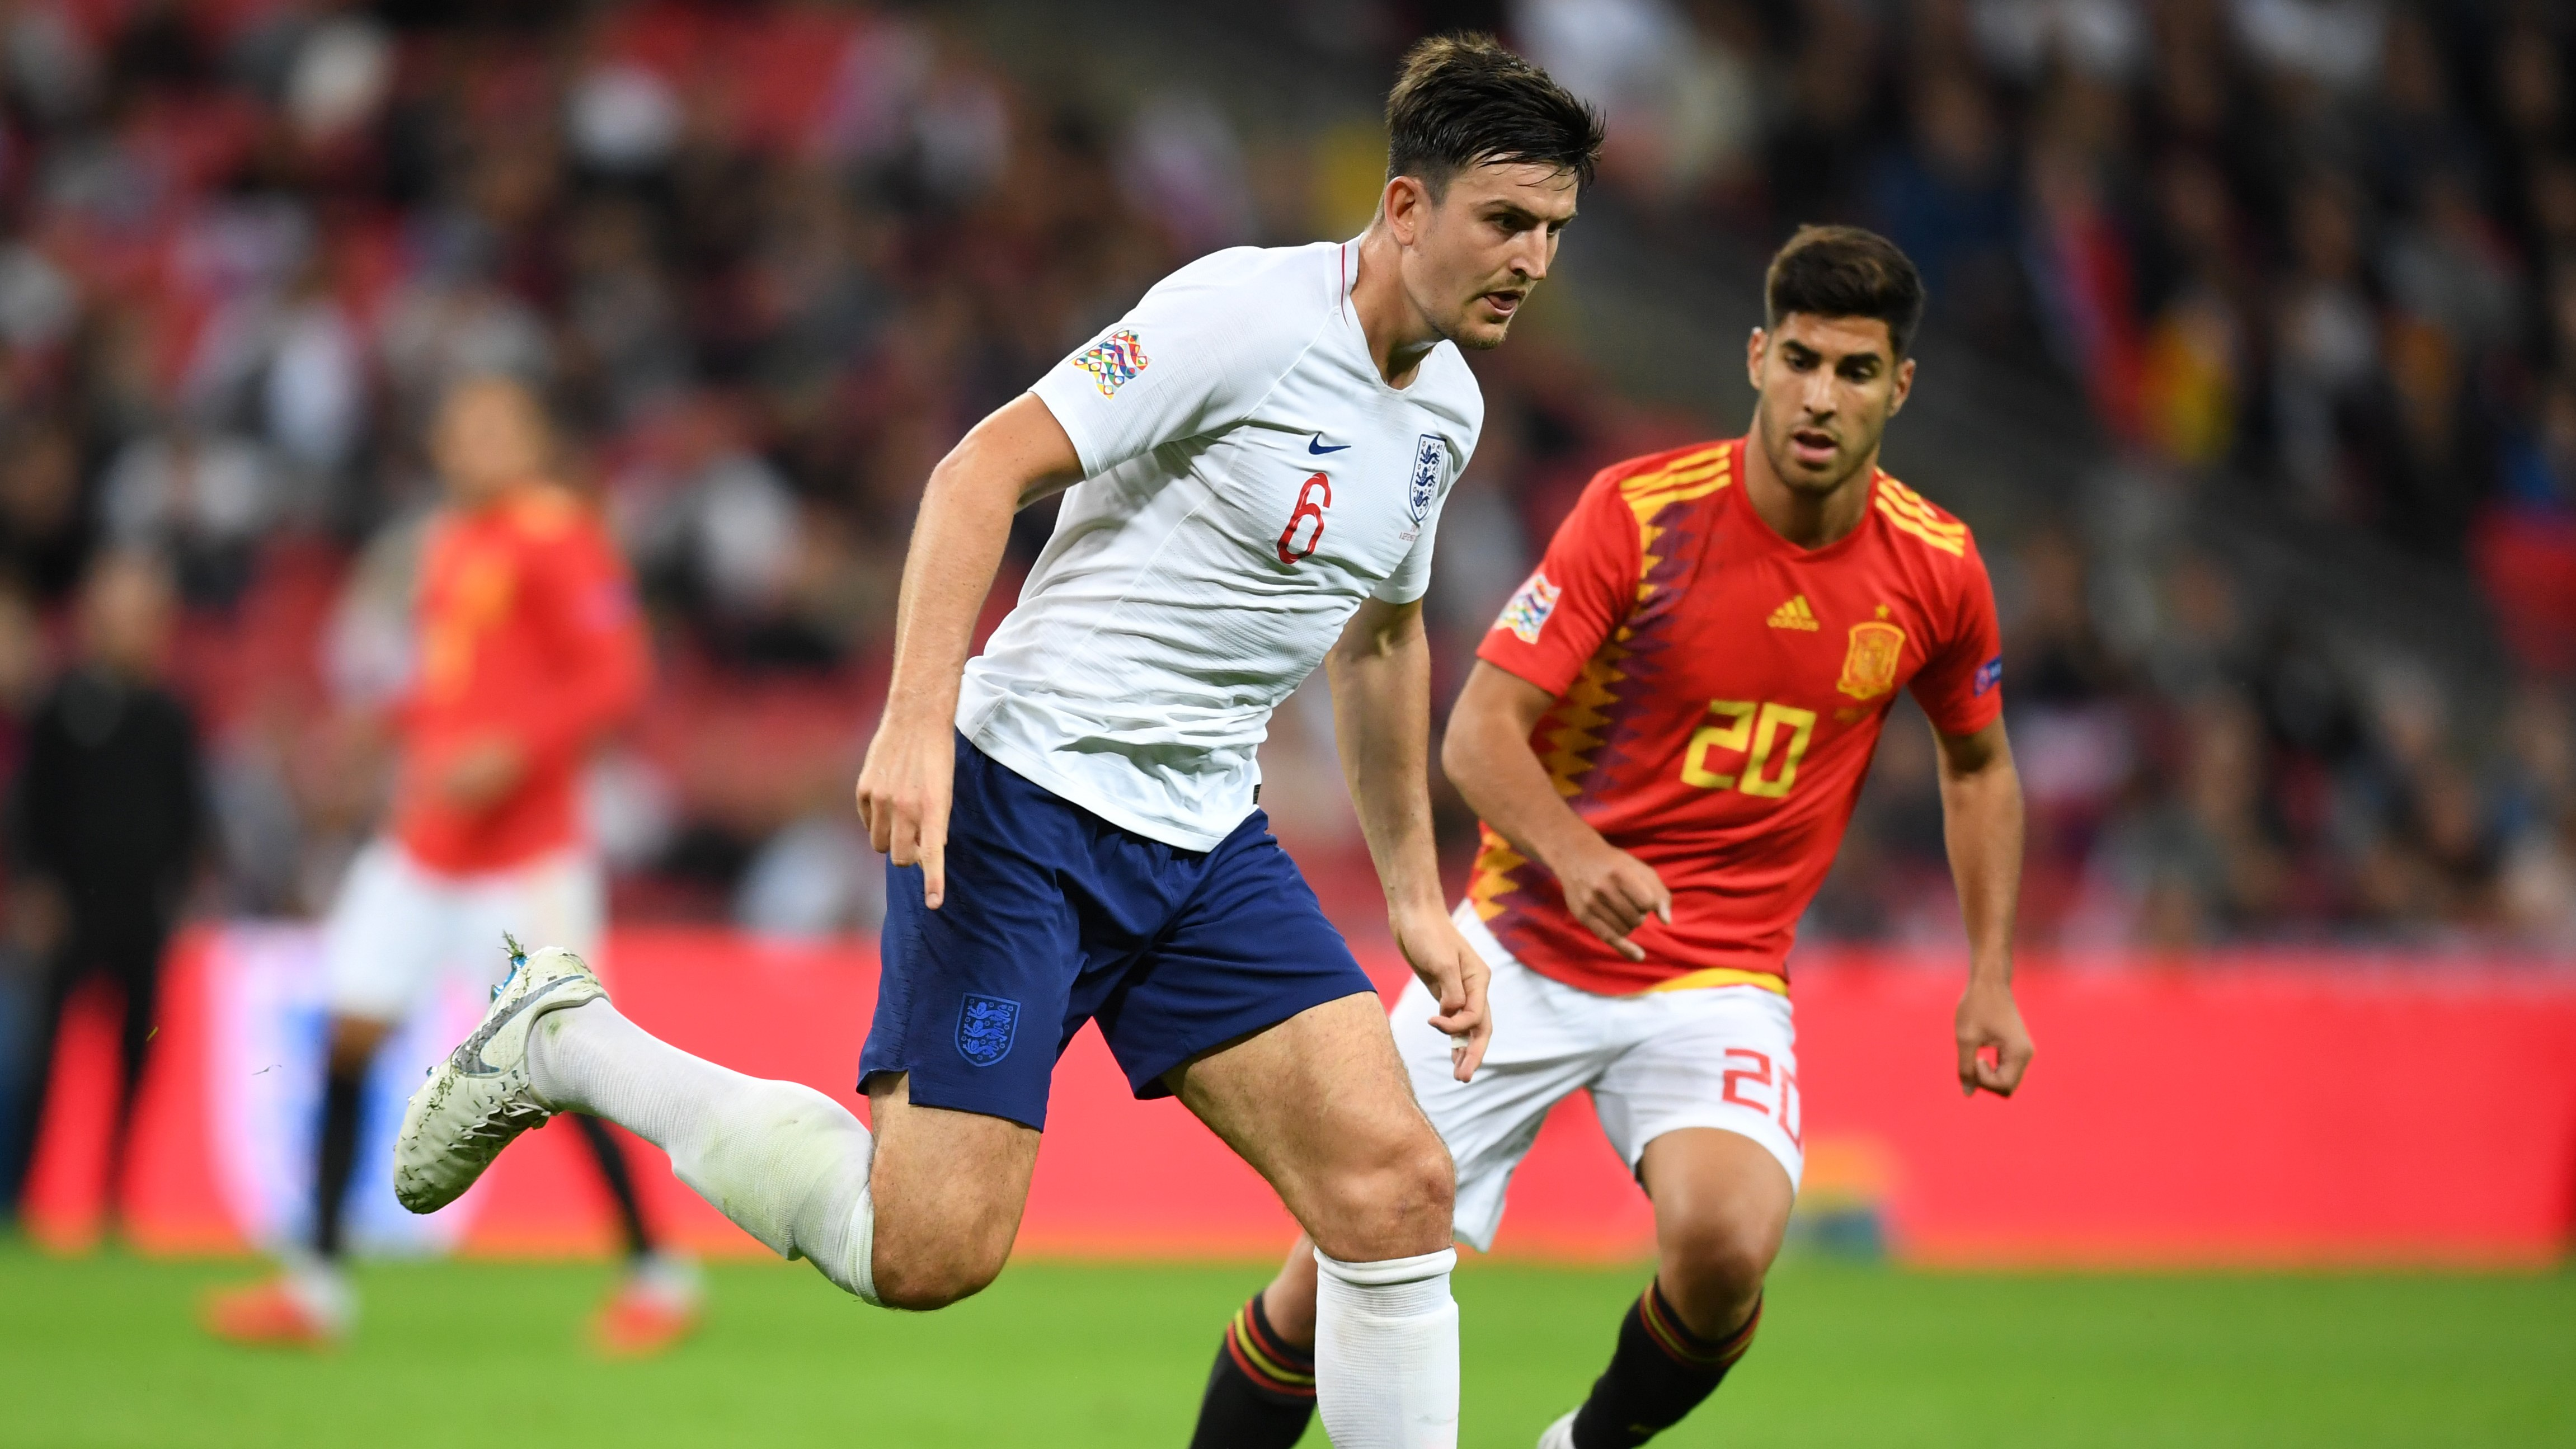 Marco Asensio Harry Maguire Inglaterra España England Spain Nations League 08092018